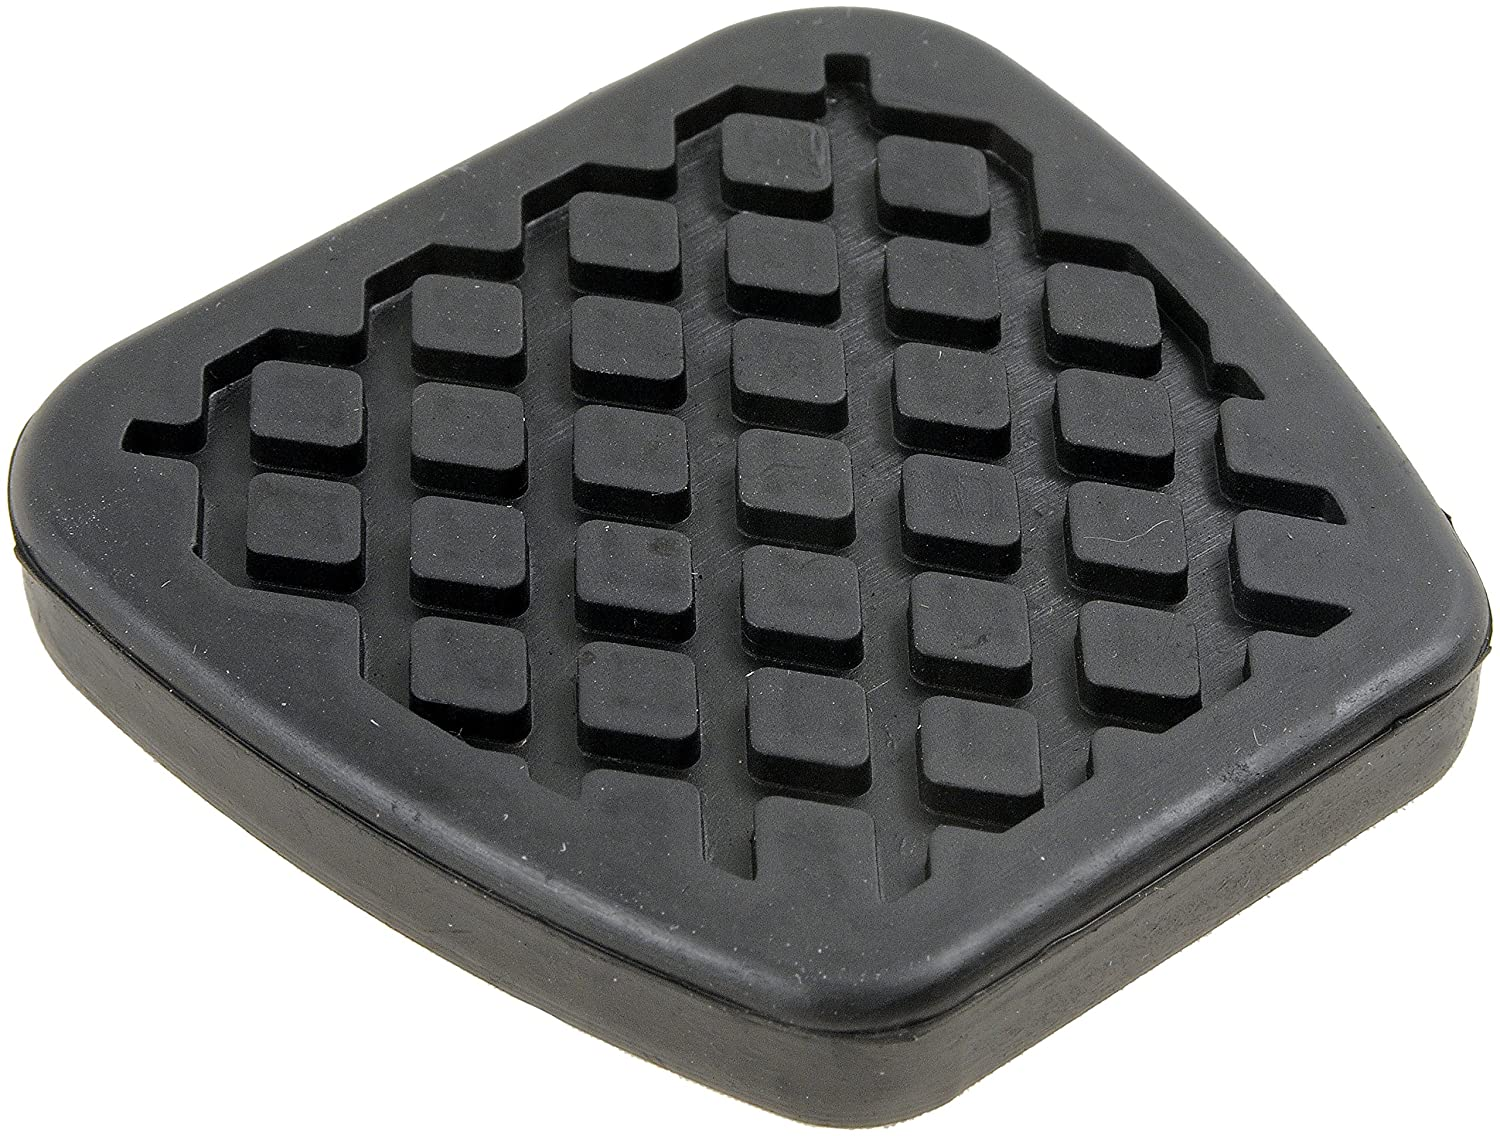 Dorman 20726 HELP! Clutch and Brake Pedal Pad Dorman - HELP